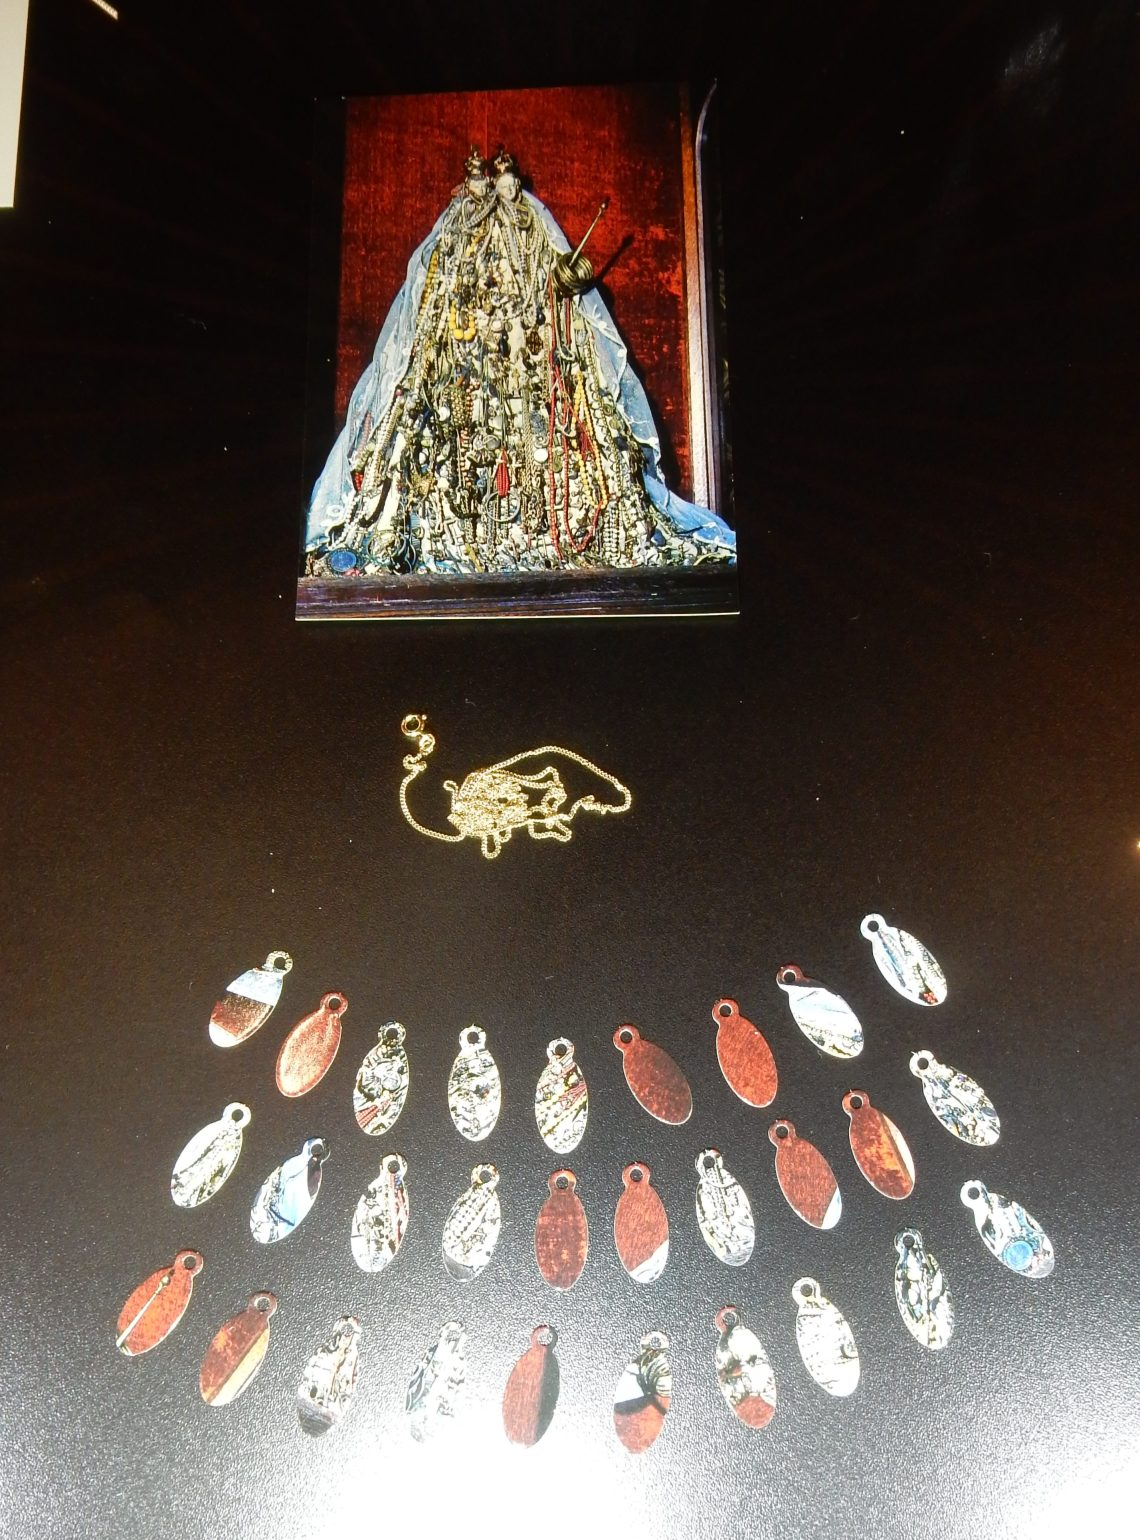 Suska Mackert, Schmuck Madonna, 2002. Collectie Liesbeth den Besten. Schakels, Concept, SAF 2018. Foto Esther Doornbusch, CC BY 4.0